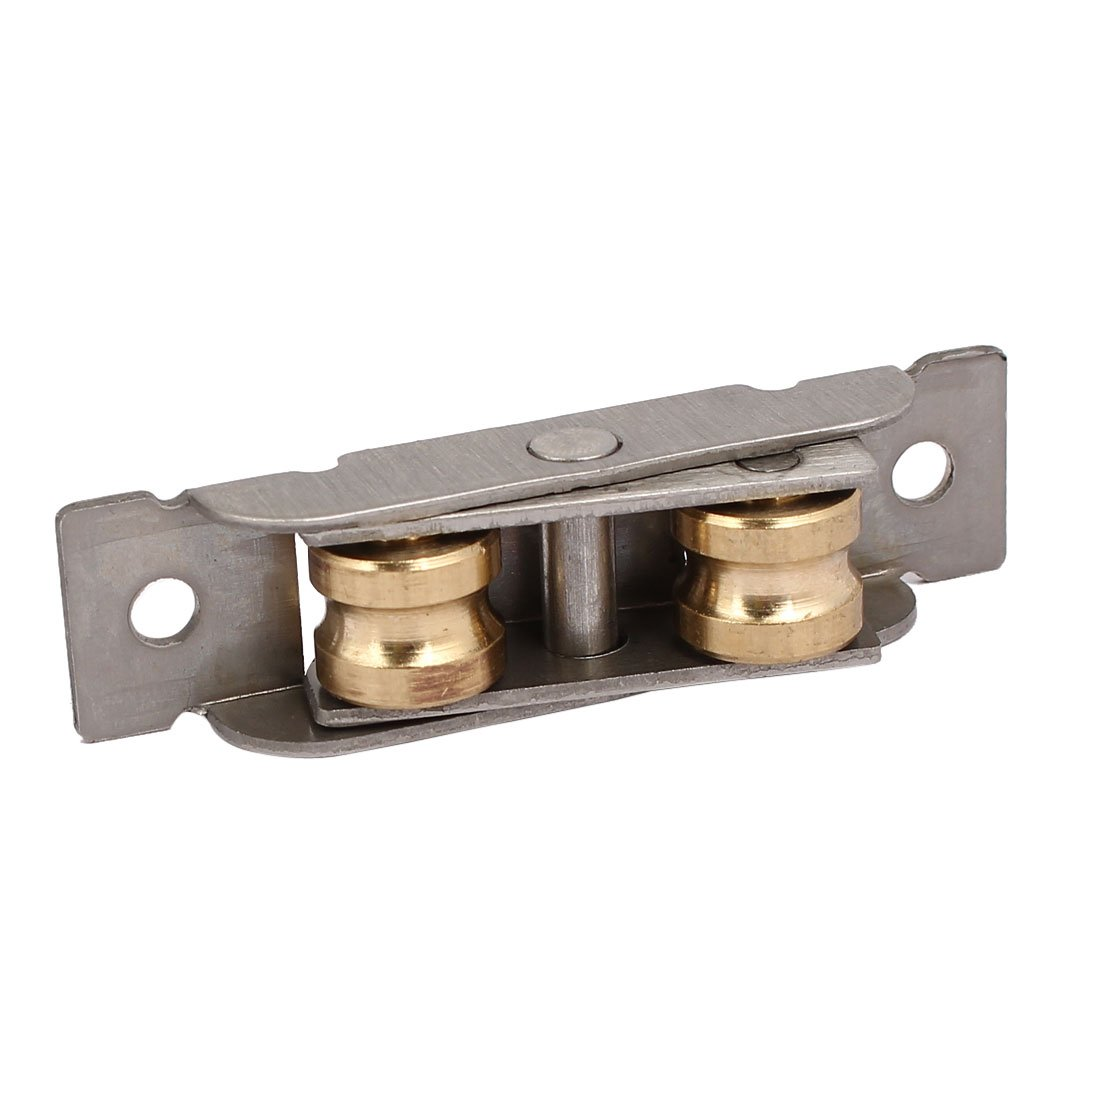 uxcell Stainless Steel Shell Brass Dual Rollers Sliding Window Sash Pulley Wheel 4pcs a17032900ux0896